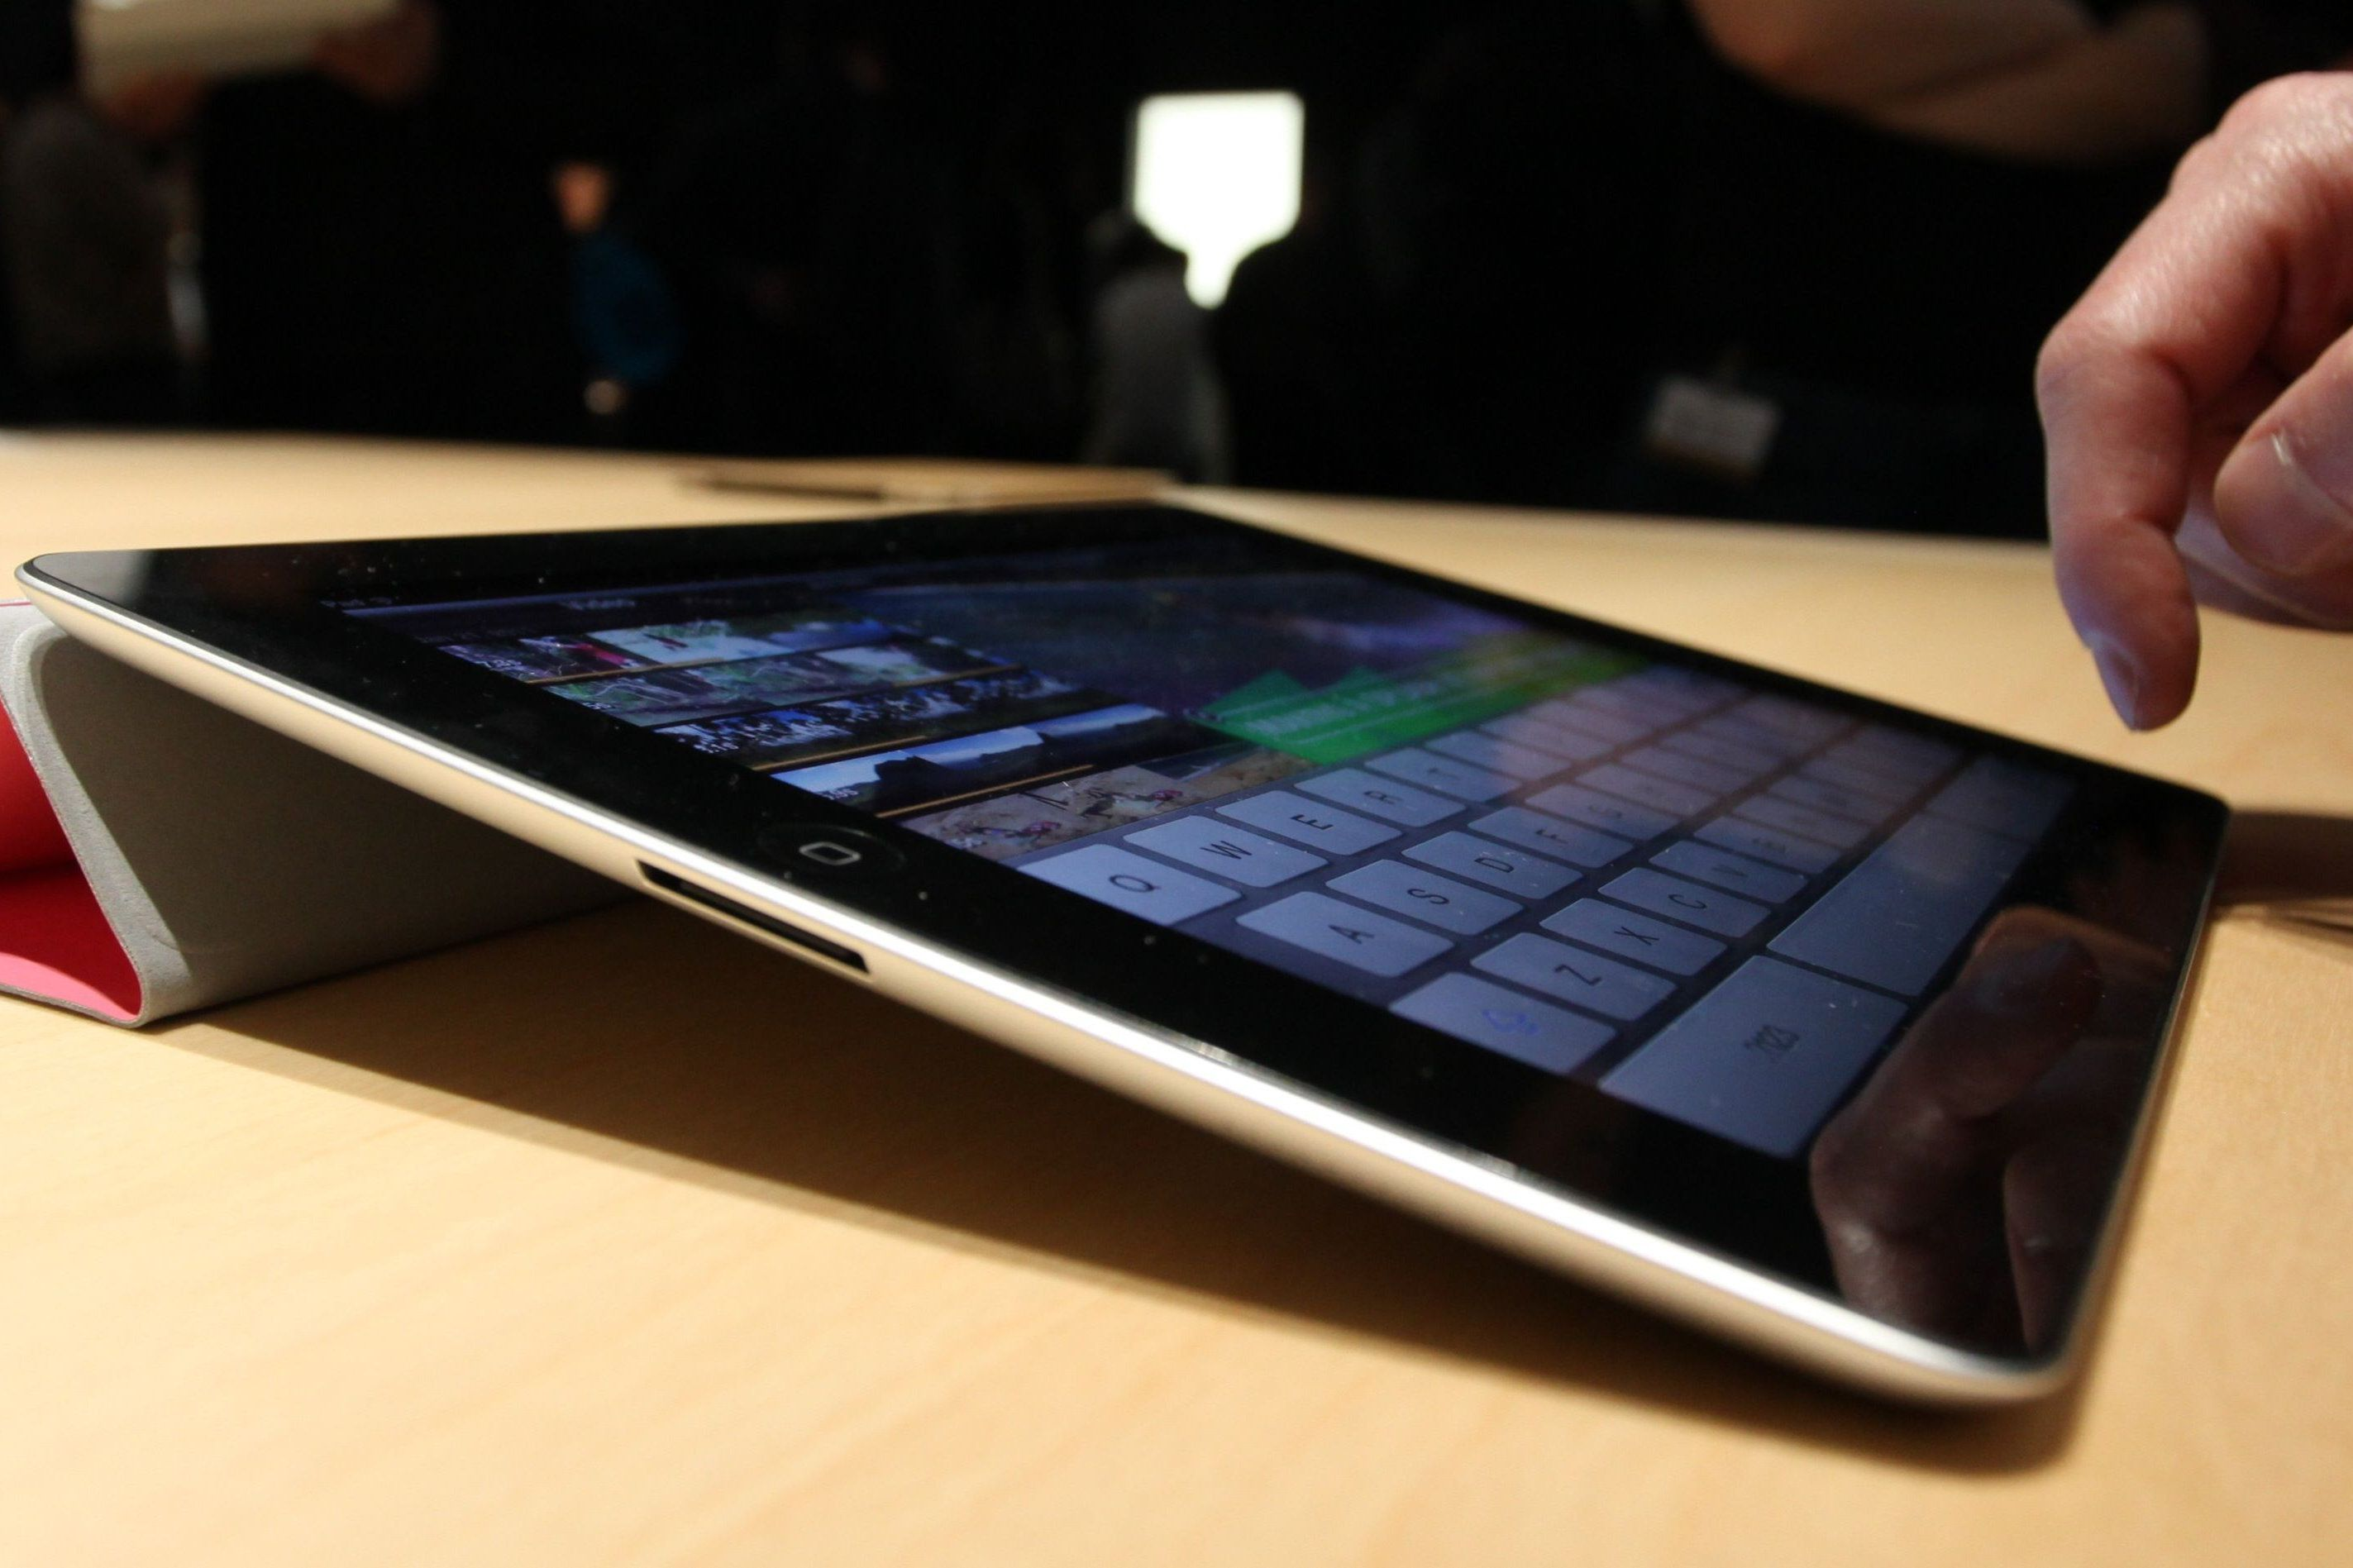 iPad Keyboard Tips and Smart Keyboard Shortcuts